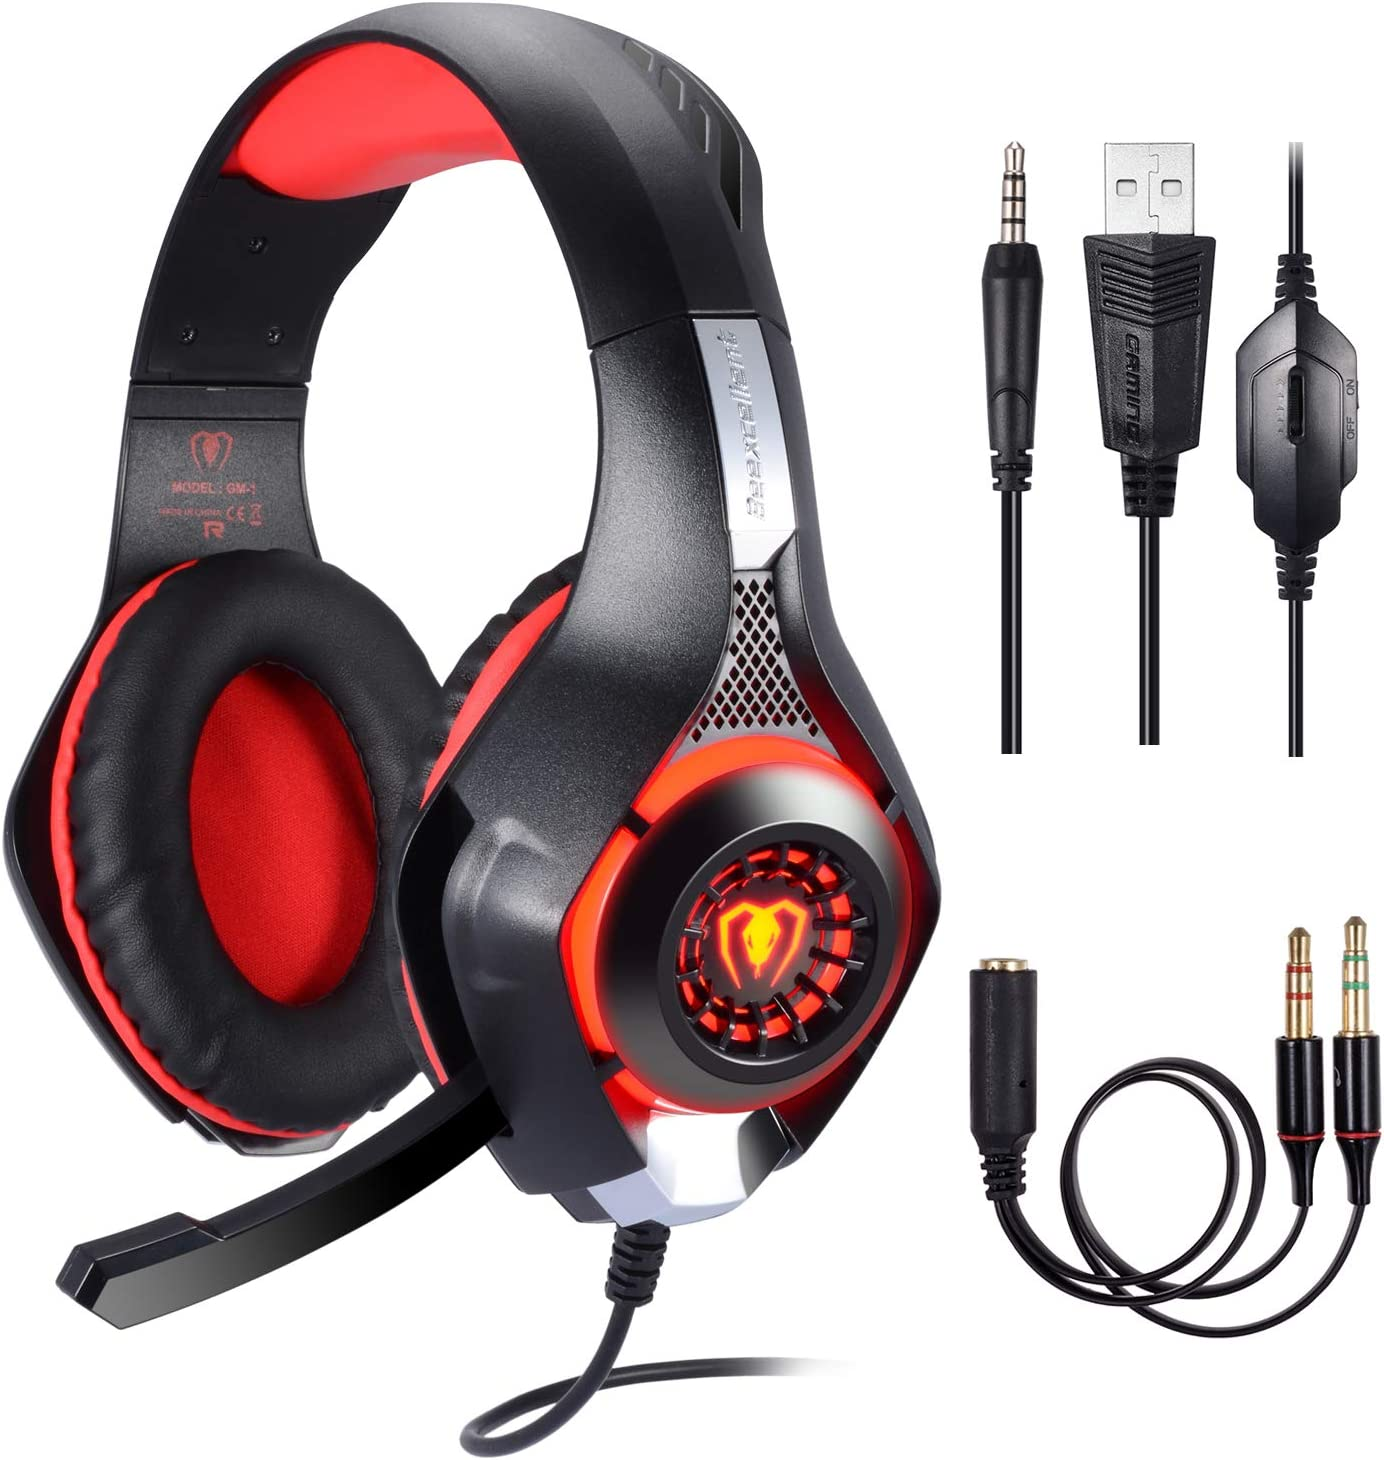 BlueFire Stereo Gaming Headset for Playstation 4 PS4, Over-Ear Headphones with Mic and LED Lights for Xbox One, PC, Laptop Red